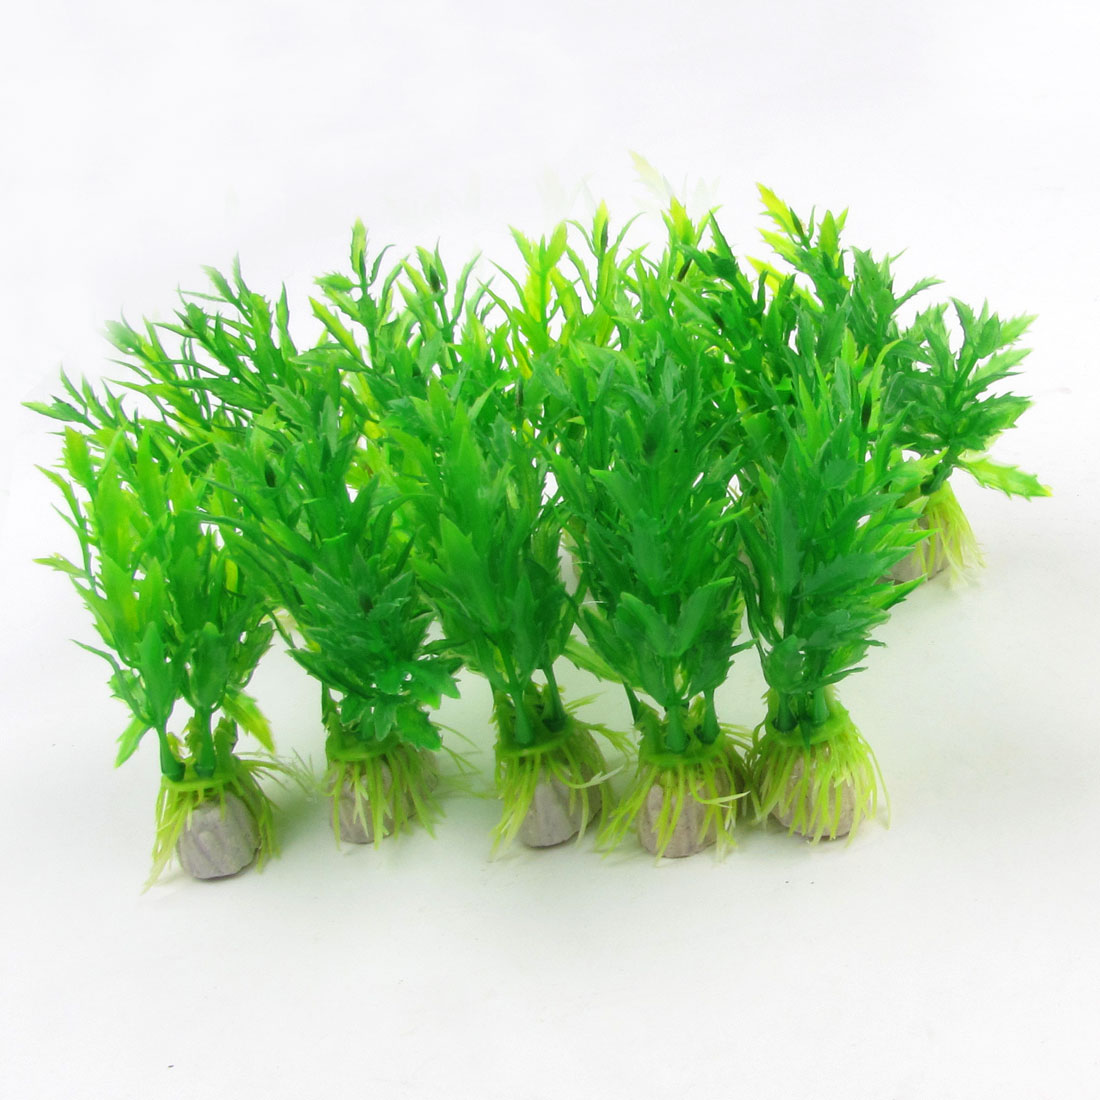 "10 Pcs Green Emulational Fish Tank Aquarium Grass Decor 3.5"" Height"